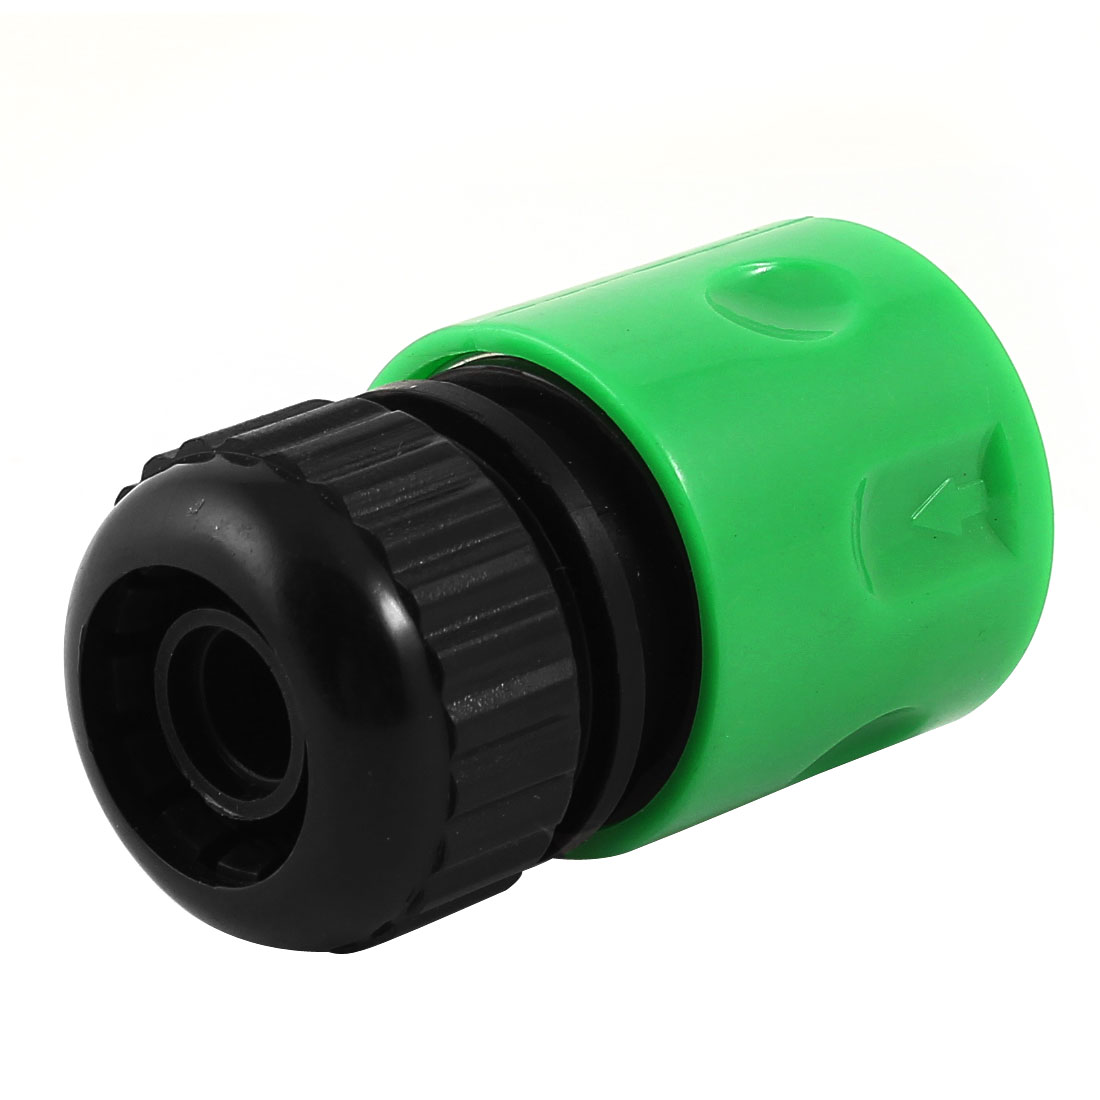 Gardening Fitting Quick Adapter Connector Green Black for 17.5mm Hose